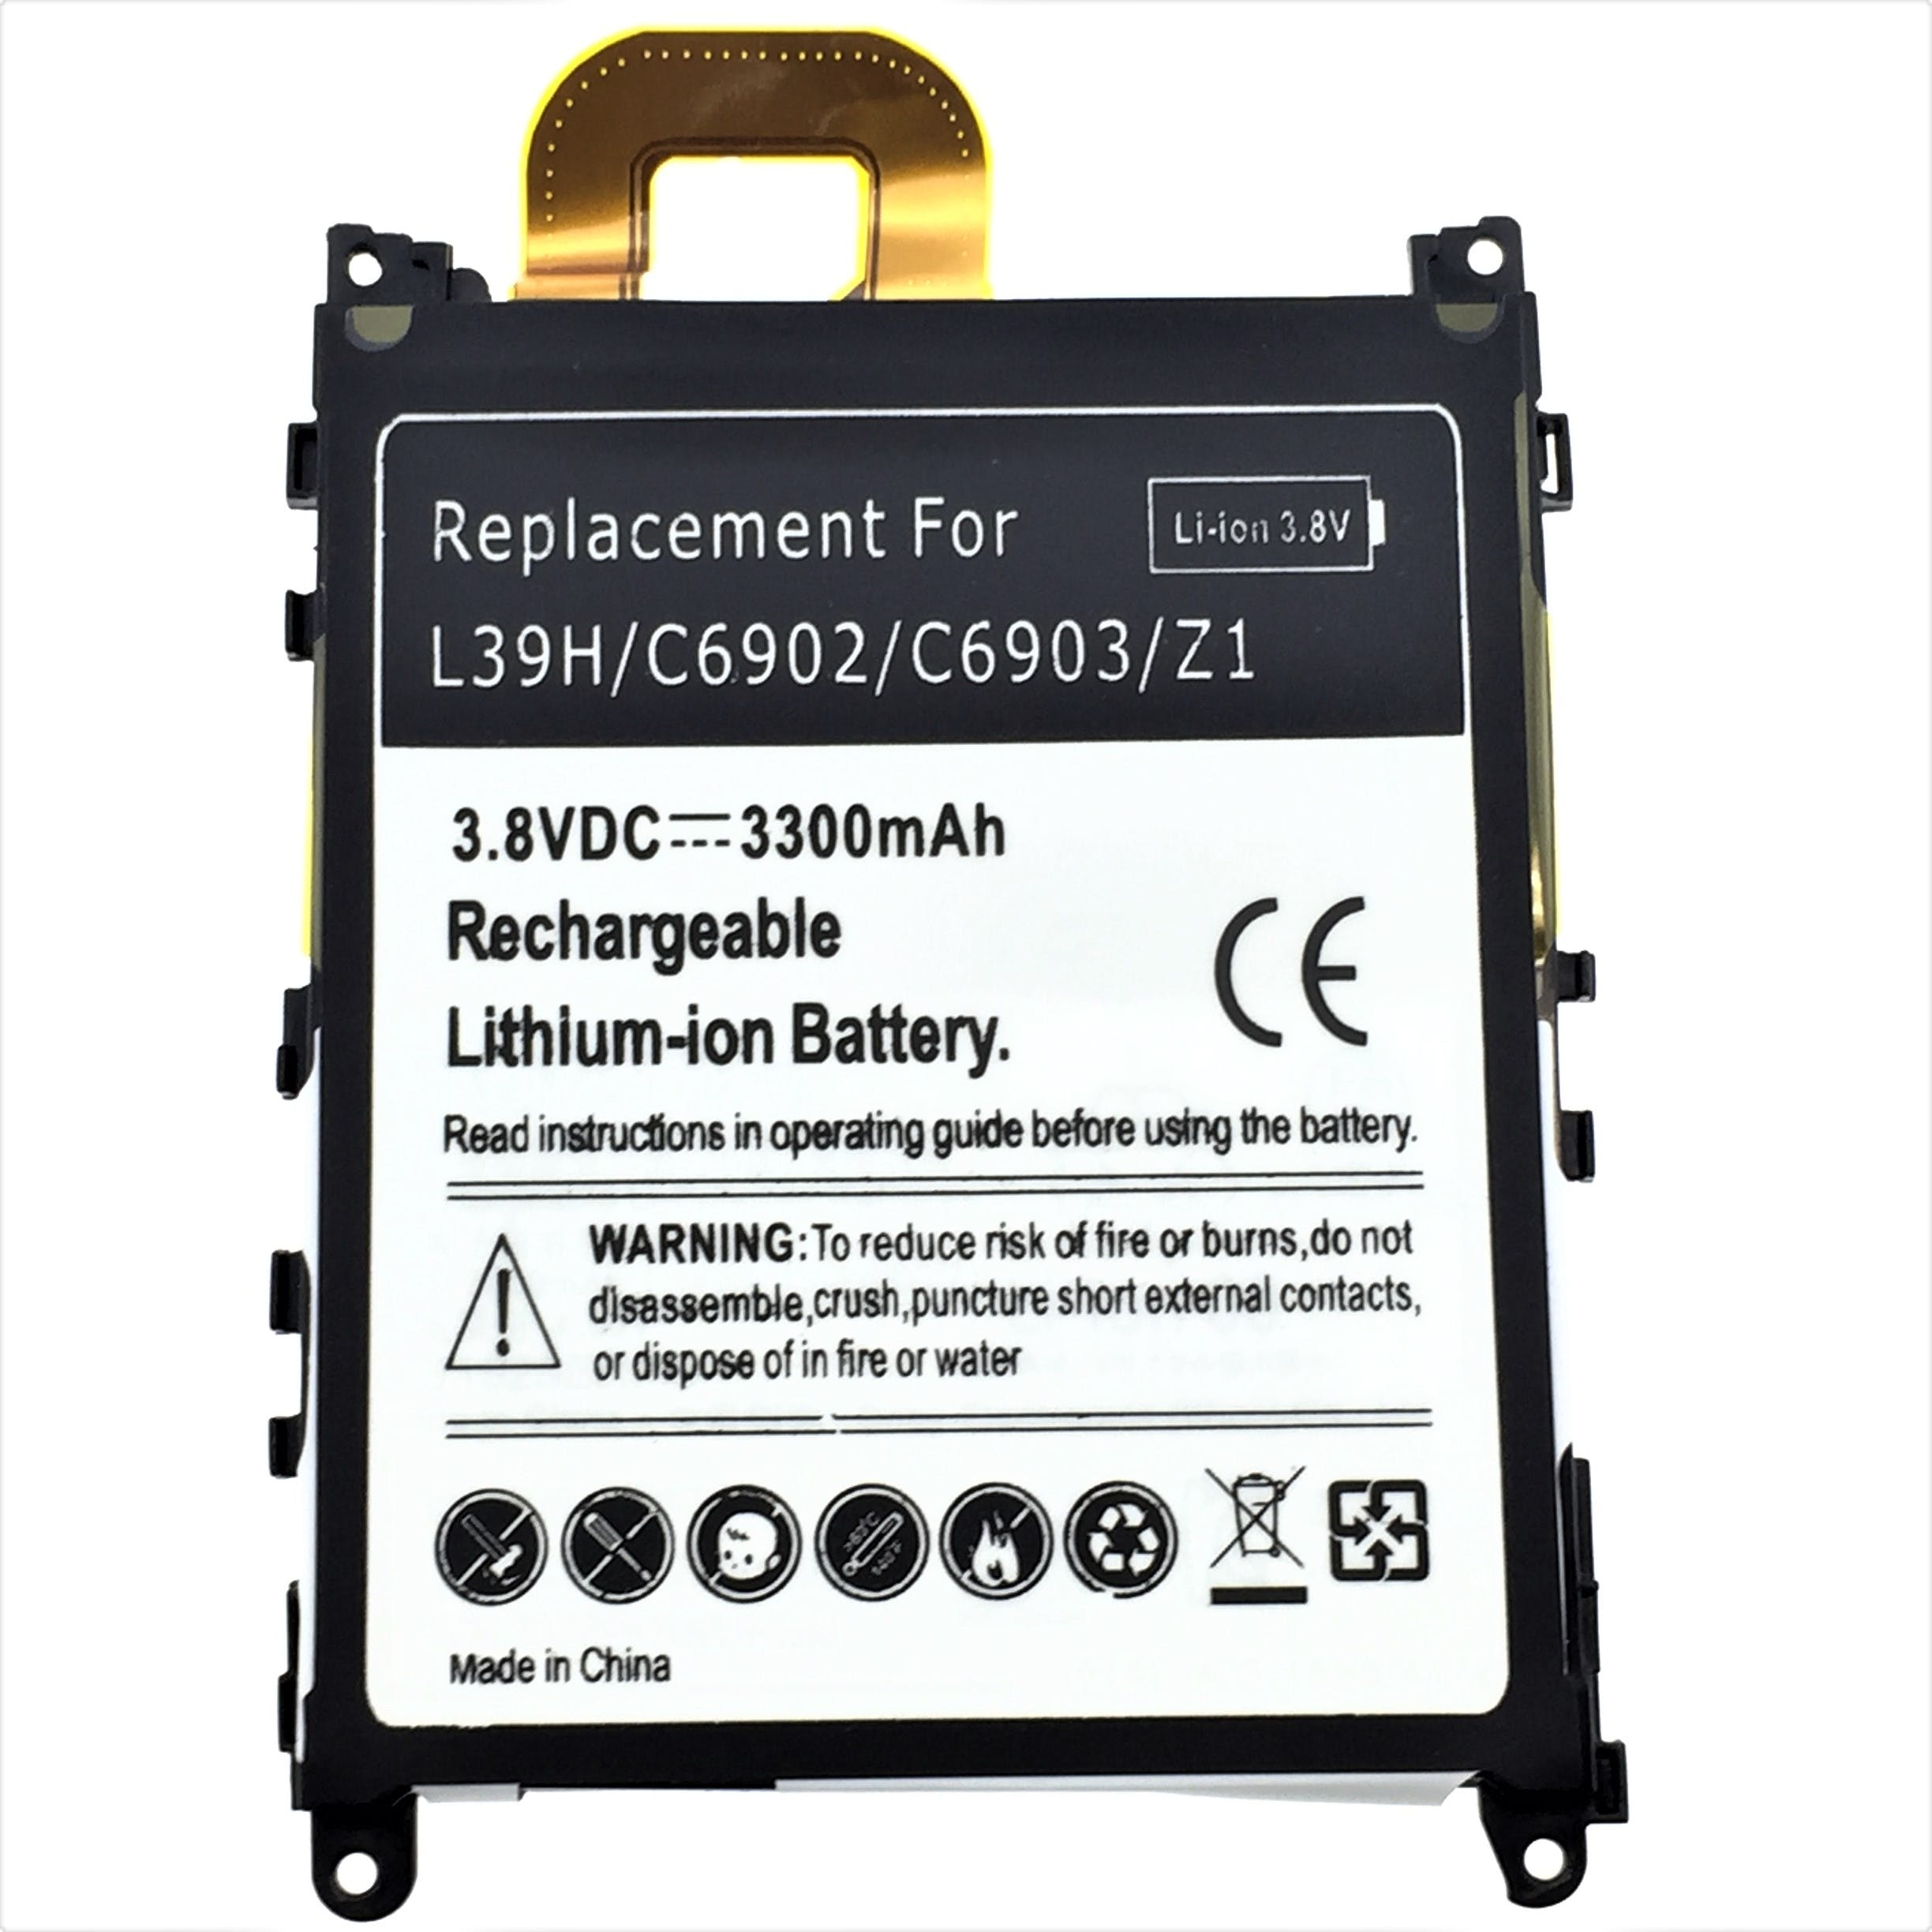 Sony Xperia Z1 L39h Replacement Battery